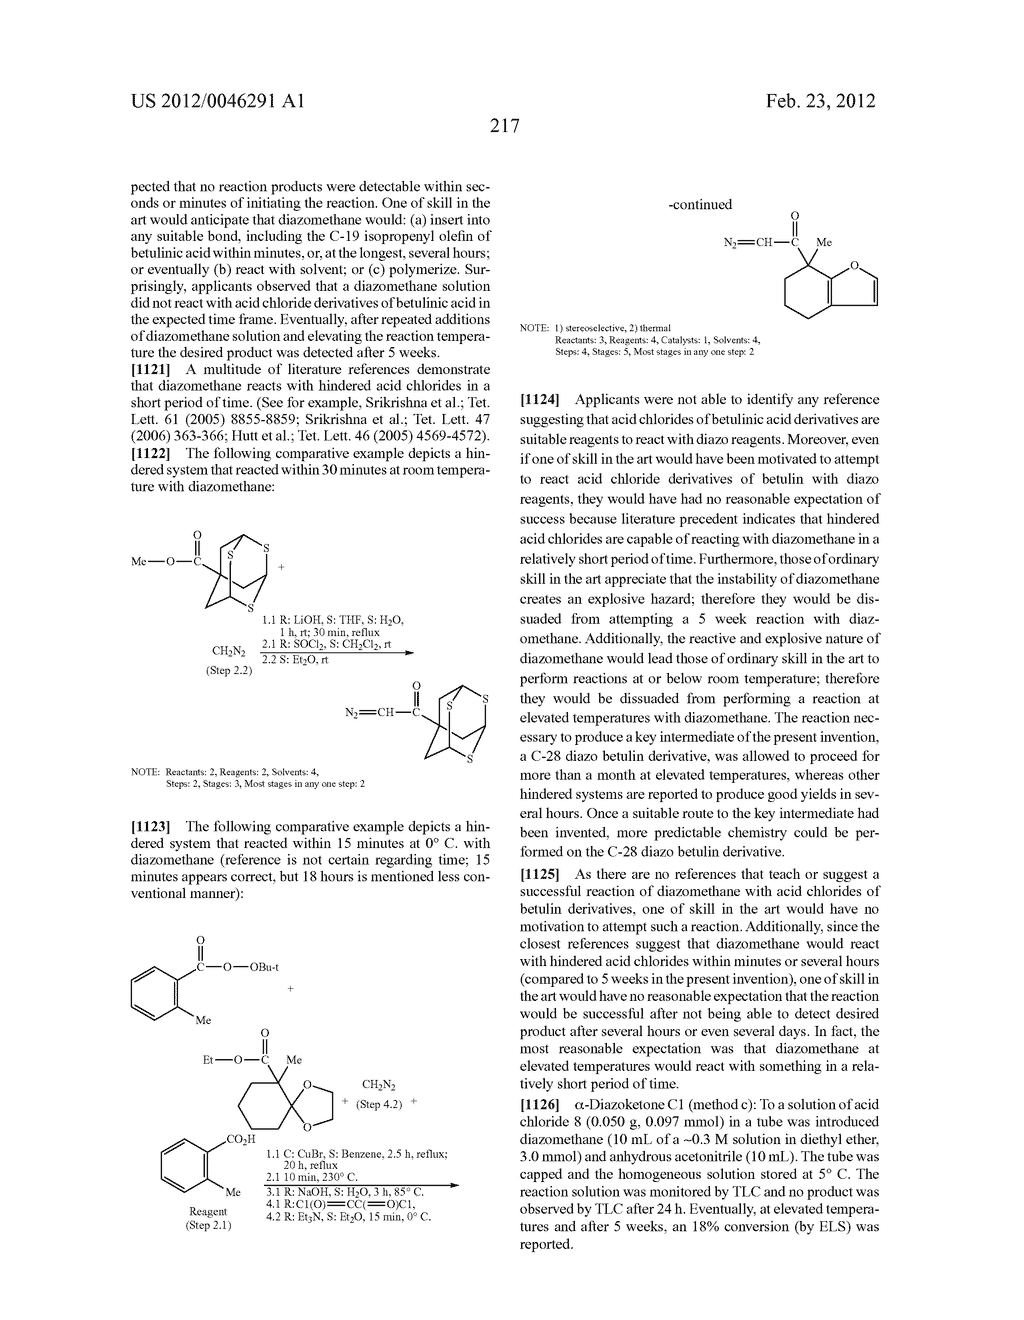 Extended Triterpene Derivatives - diagram, schematic, and image 217